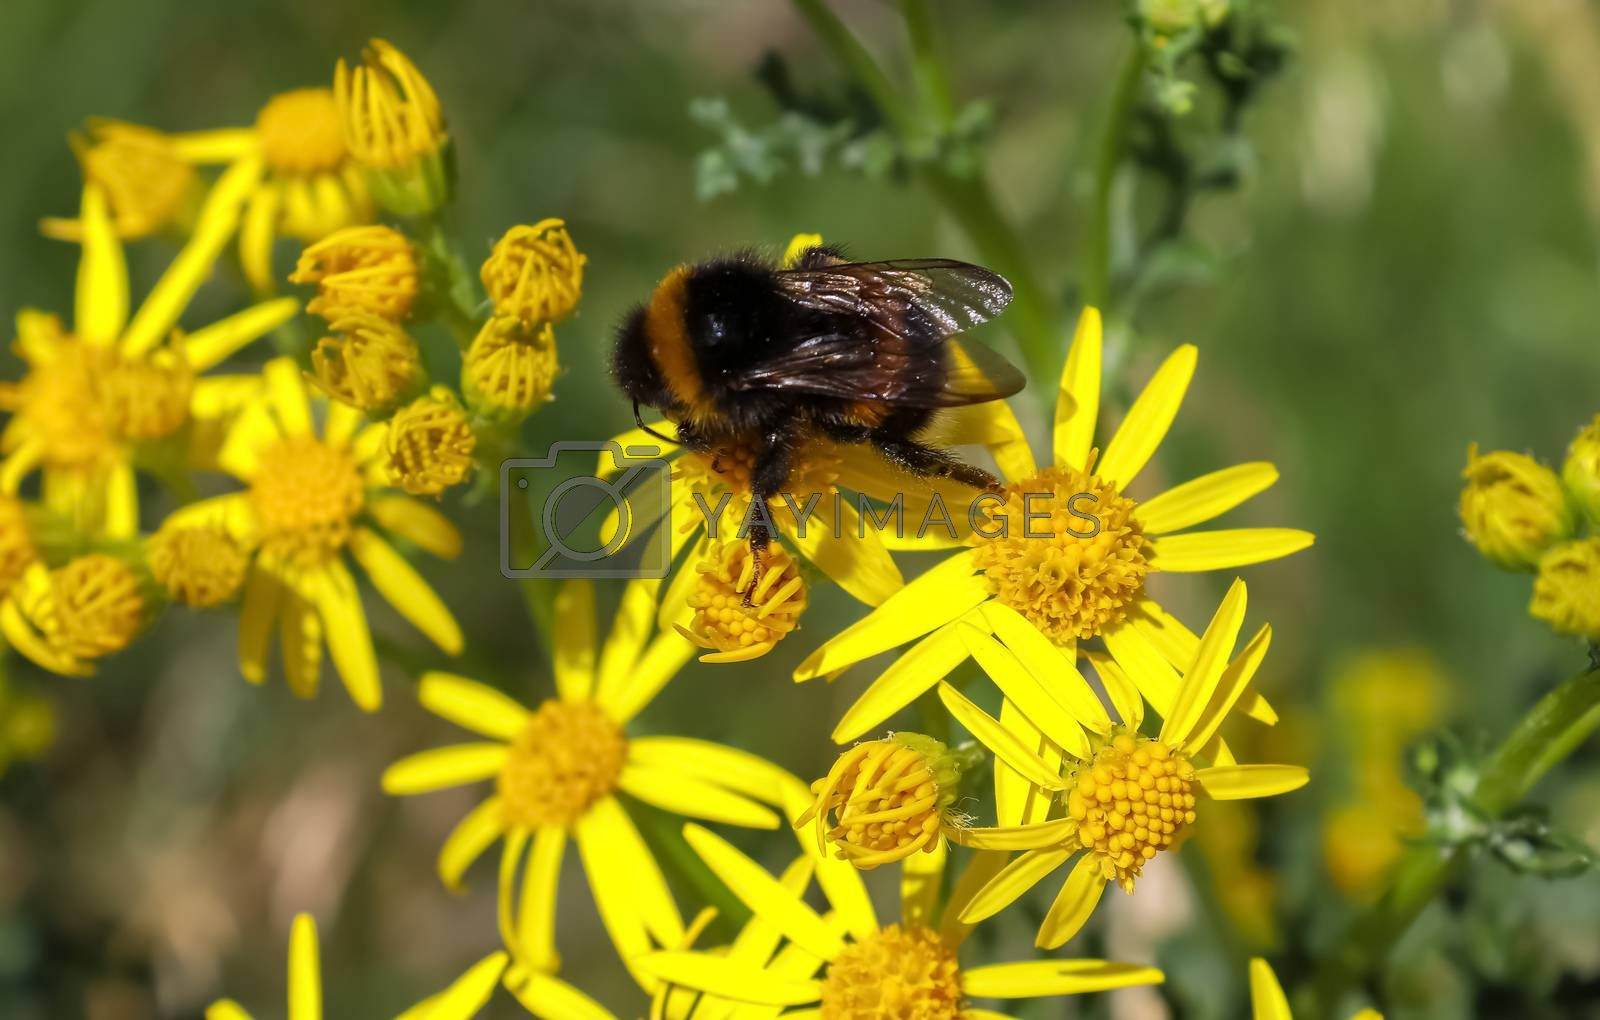 Beautiful flowers on a meadow in summer with insects like bees a by MP_foto71